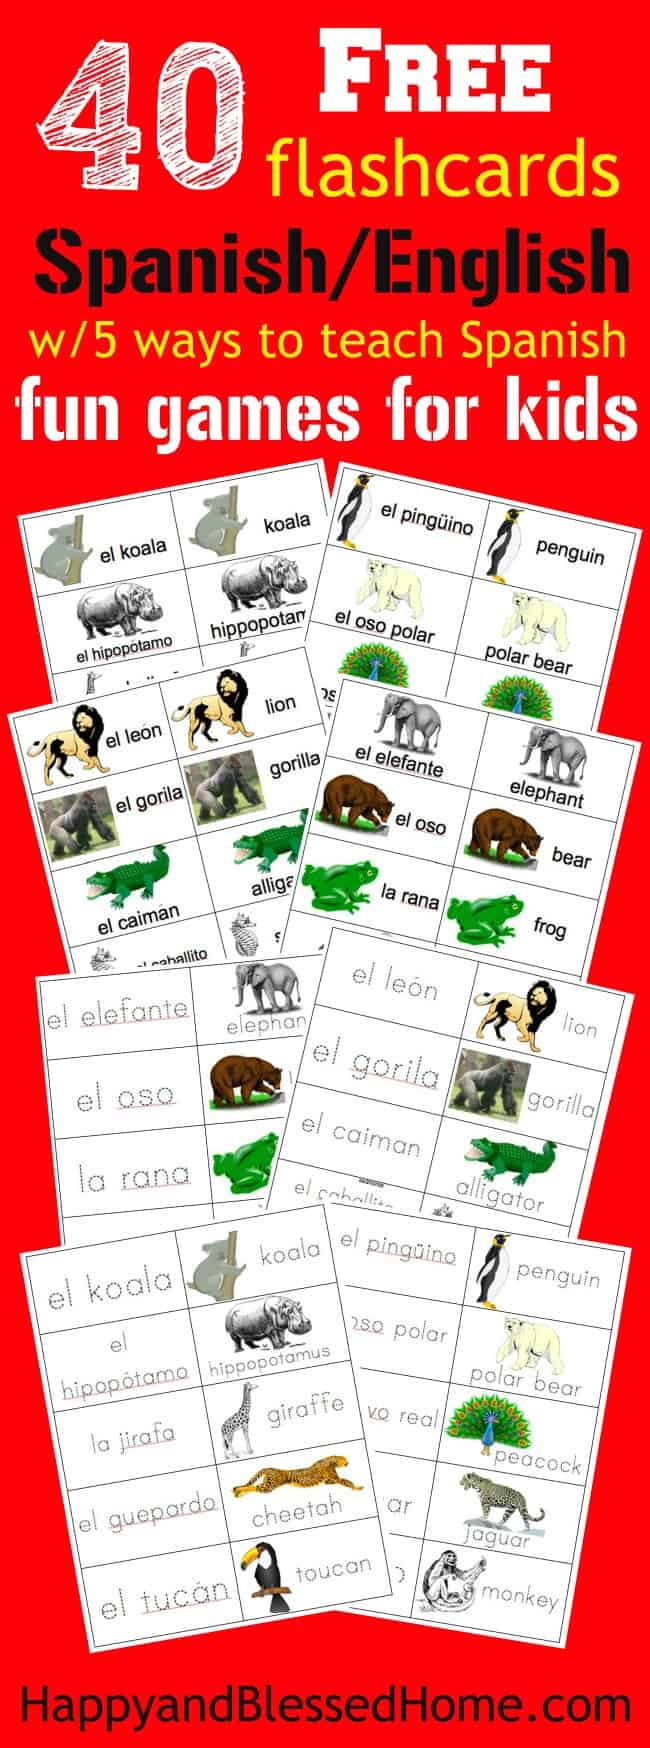 graphic about Spanish to English Flashcards With Pictures Printable named 40 Free of charge Printable Spanish-English Jungle Animal Flashcards